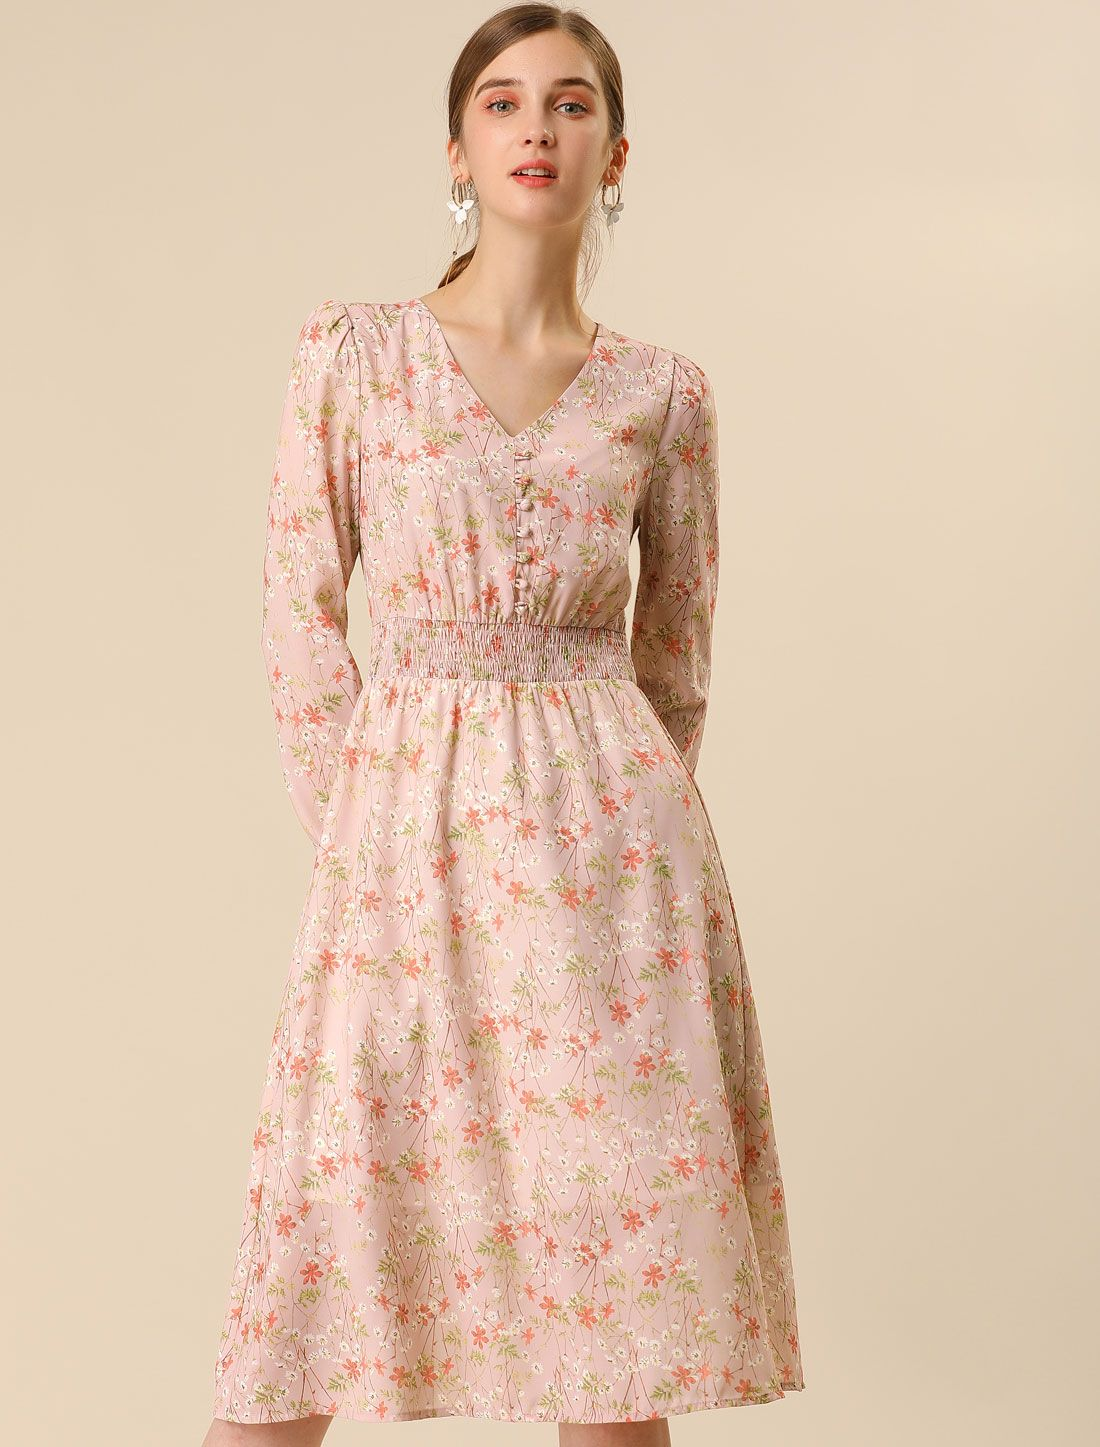 Women S Floral Print V Neck Smocked Waist Midi A Line Dress S Pink Ad Neck Affiliate Smocked Print In 2020 A Line Dress Autumn Street Style Dresses [ 1447 x 1100 Pixel ]